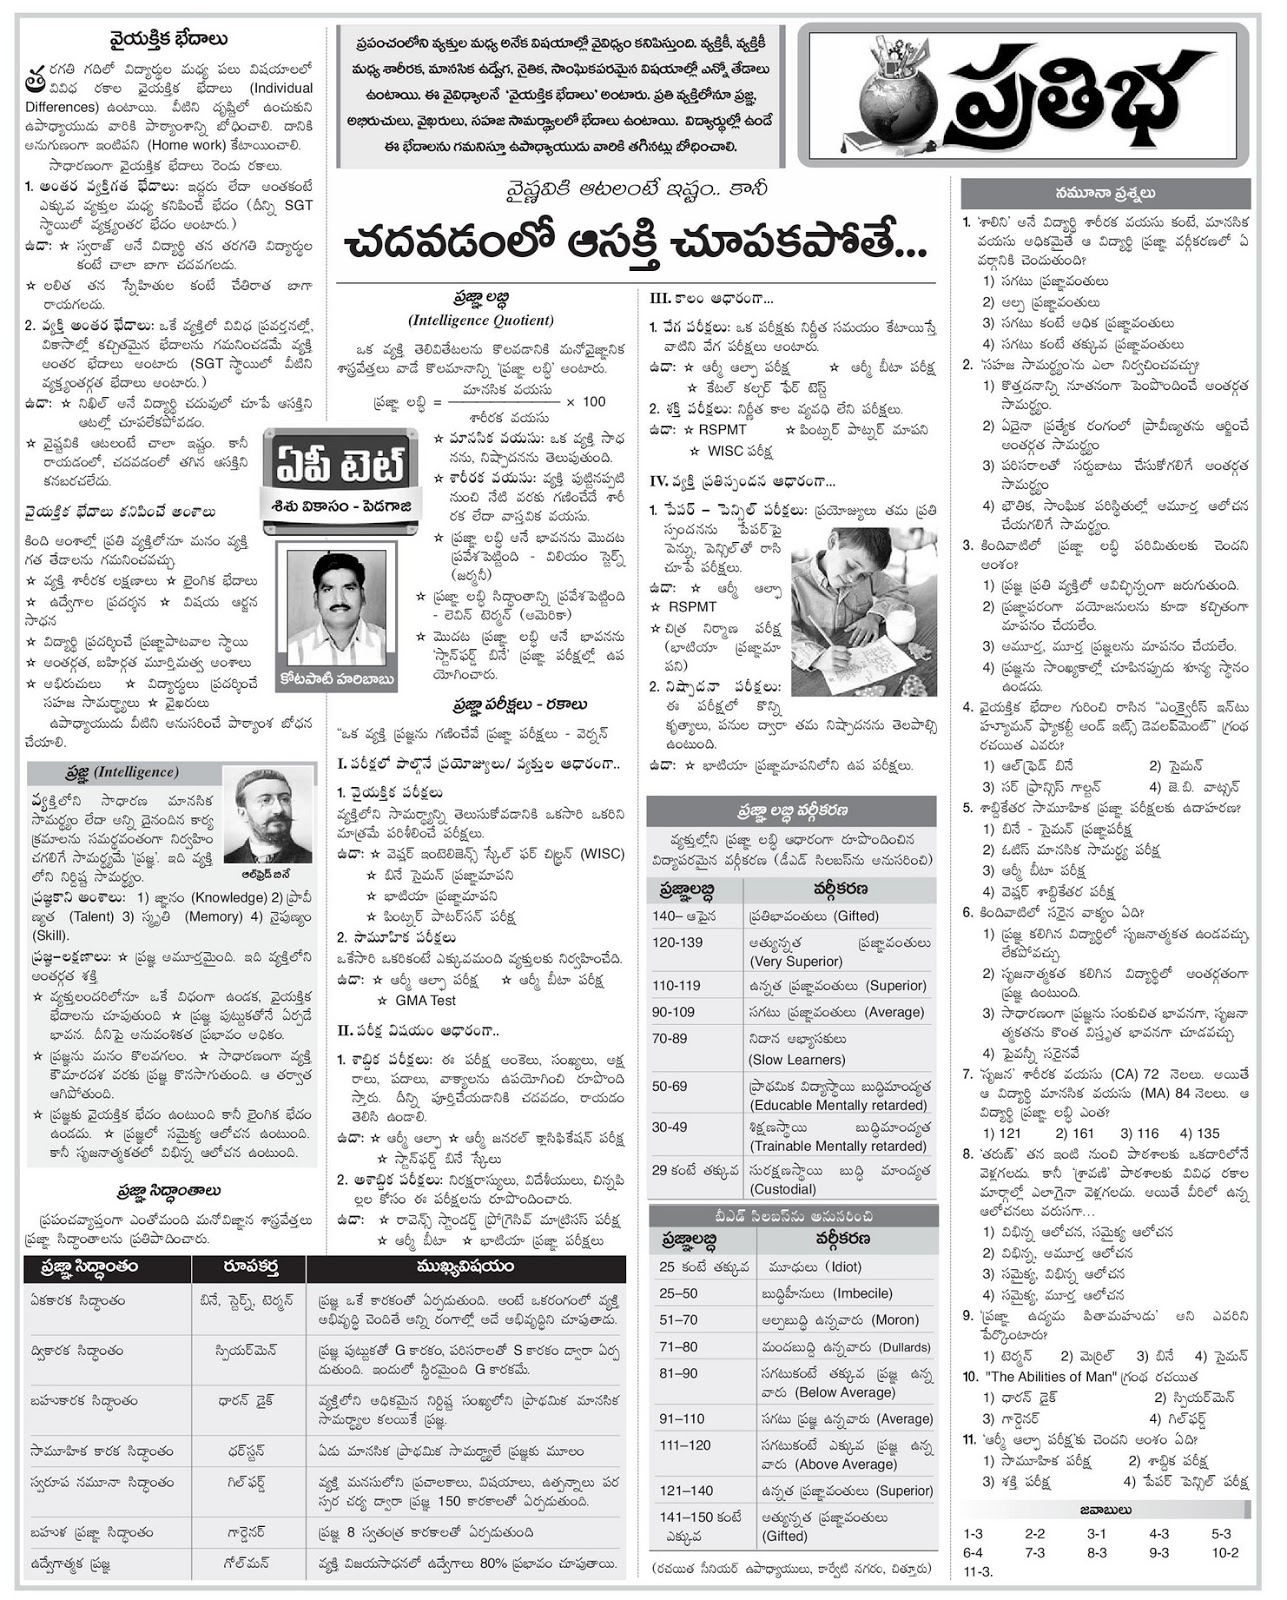 Eenadu pratibha intermediate model papers